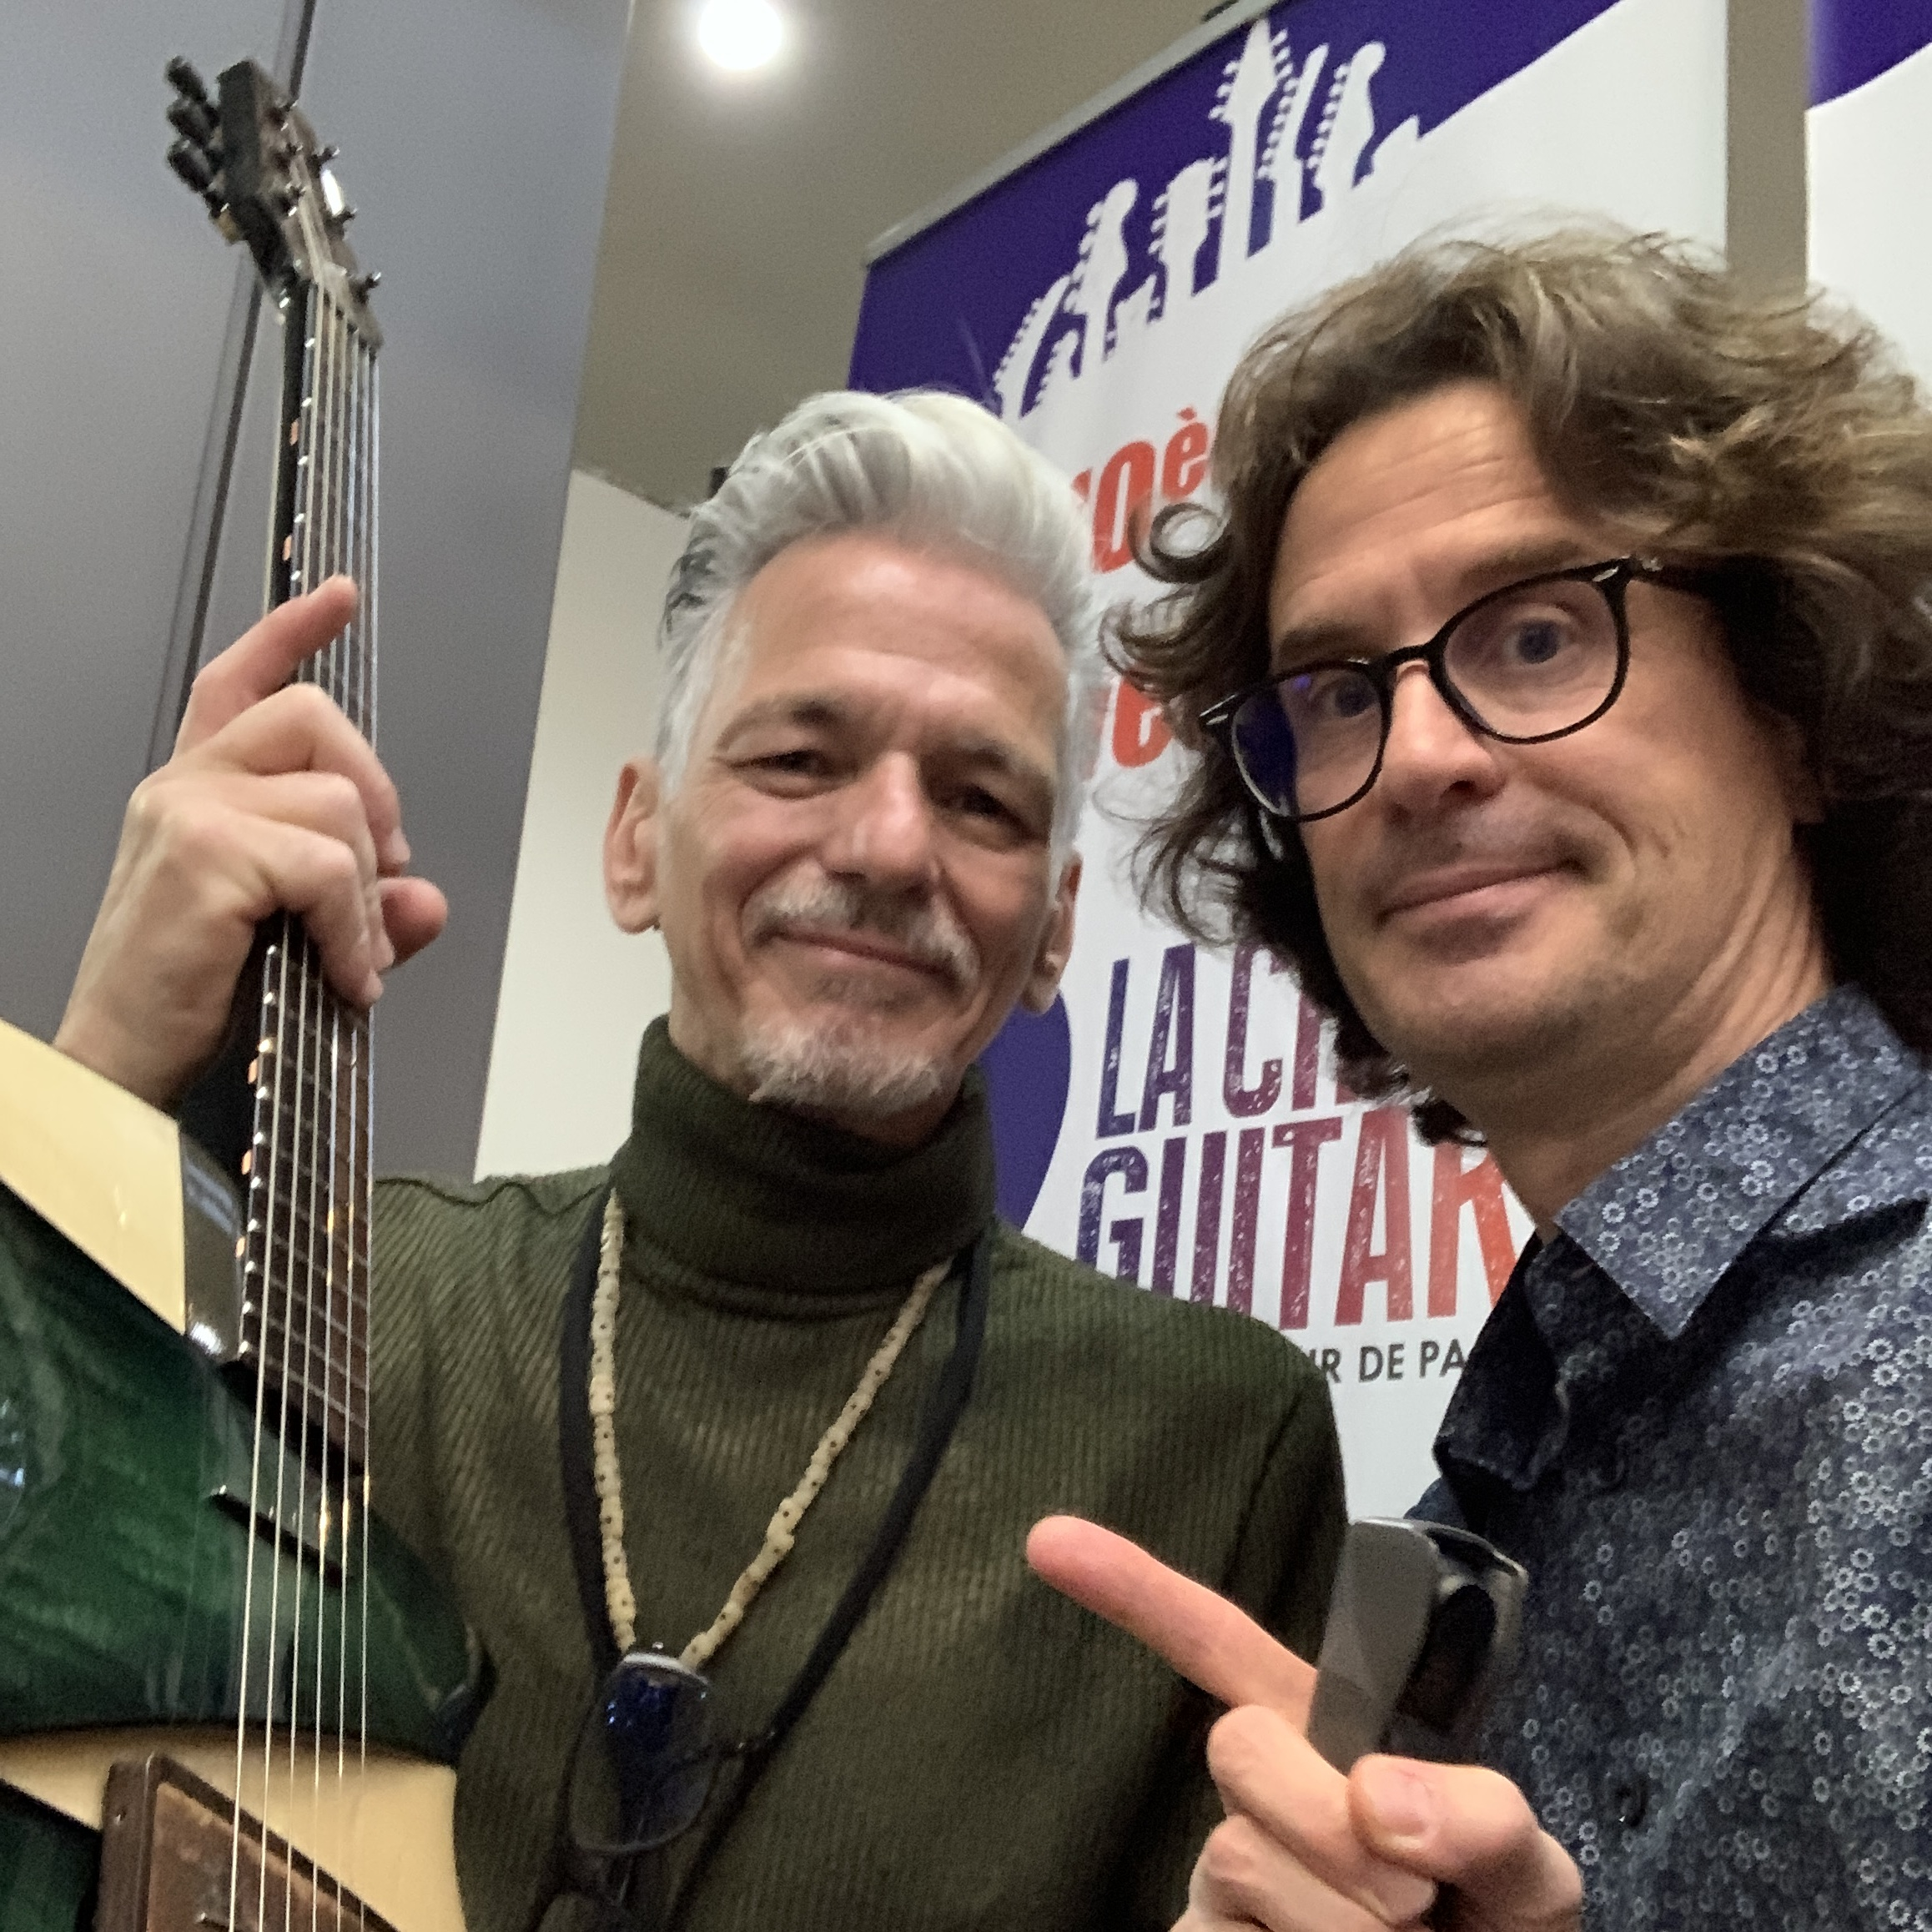 Claudio Pagelli luthier interview - Switzerland lutherie genius with his wife Claudia